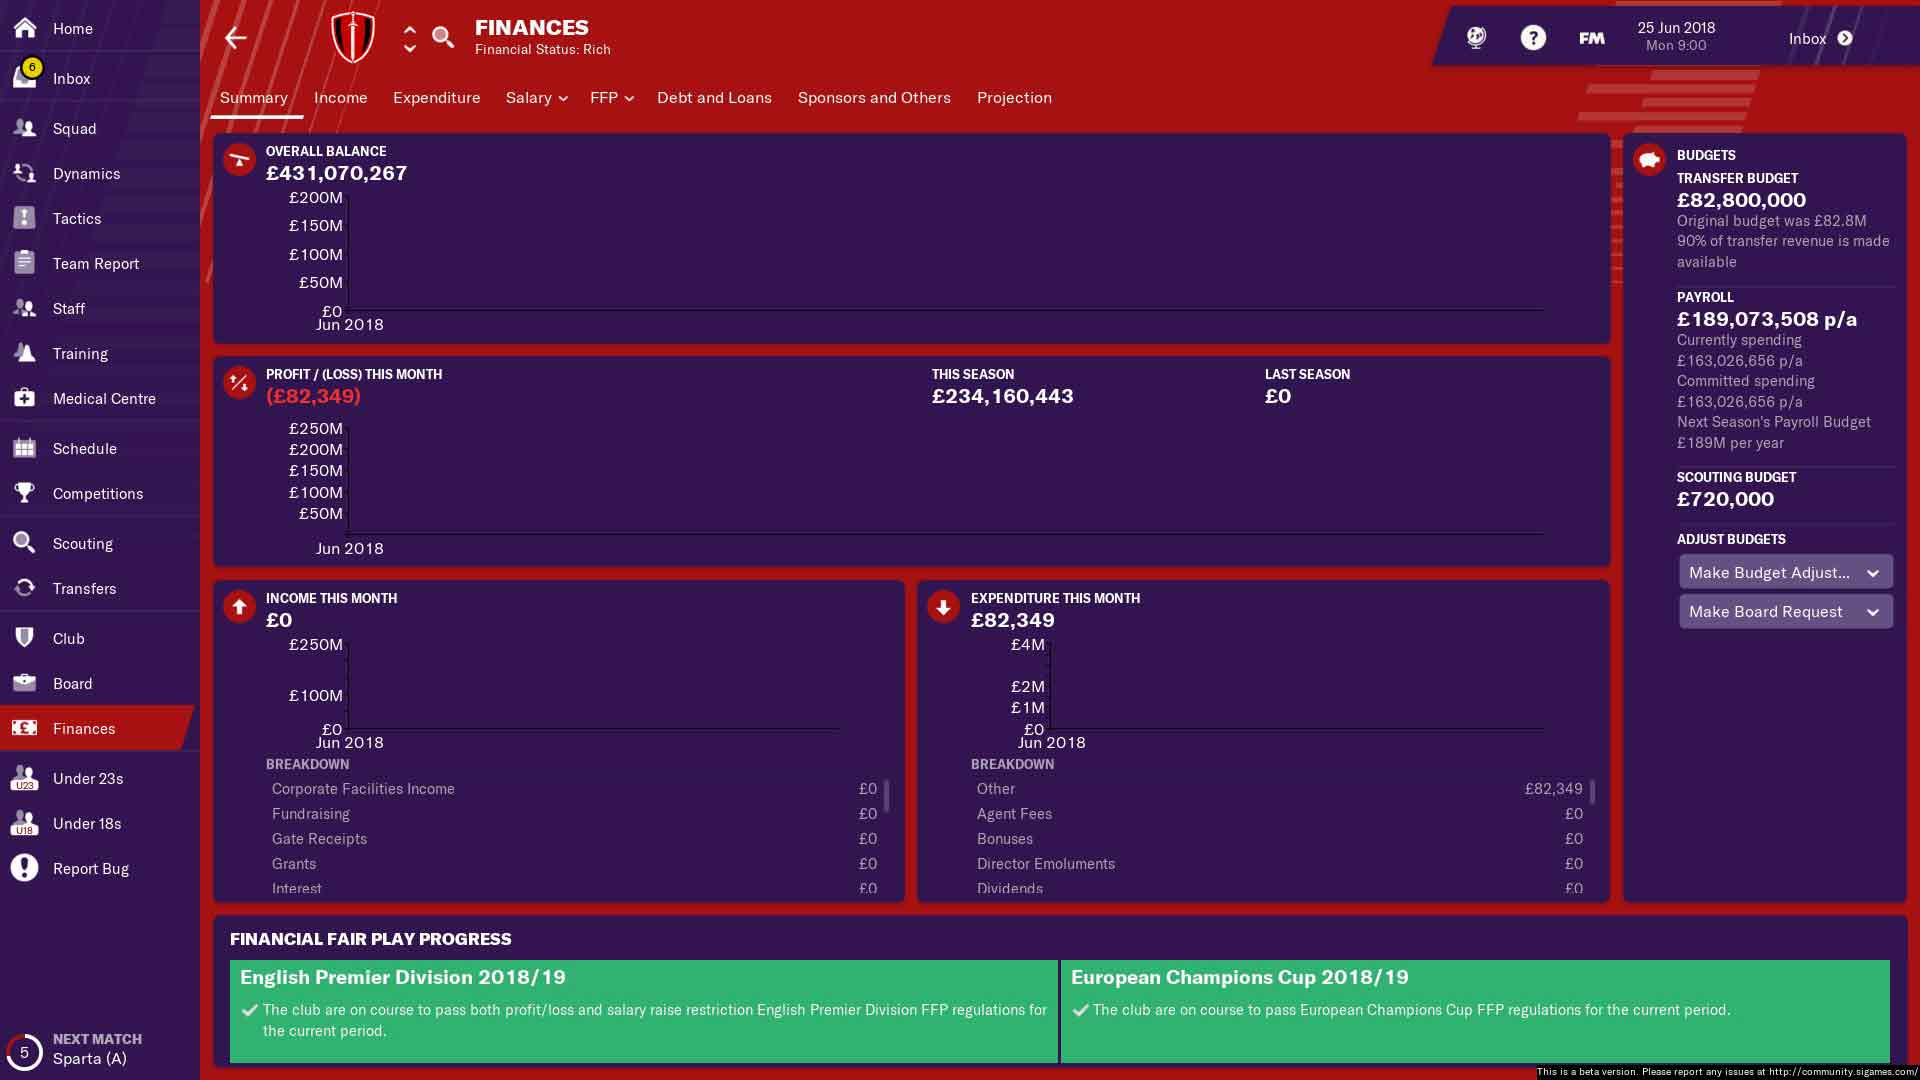 manchester united fm19 finances